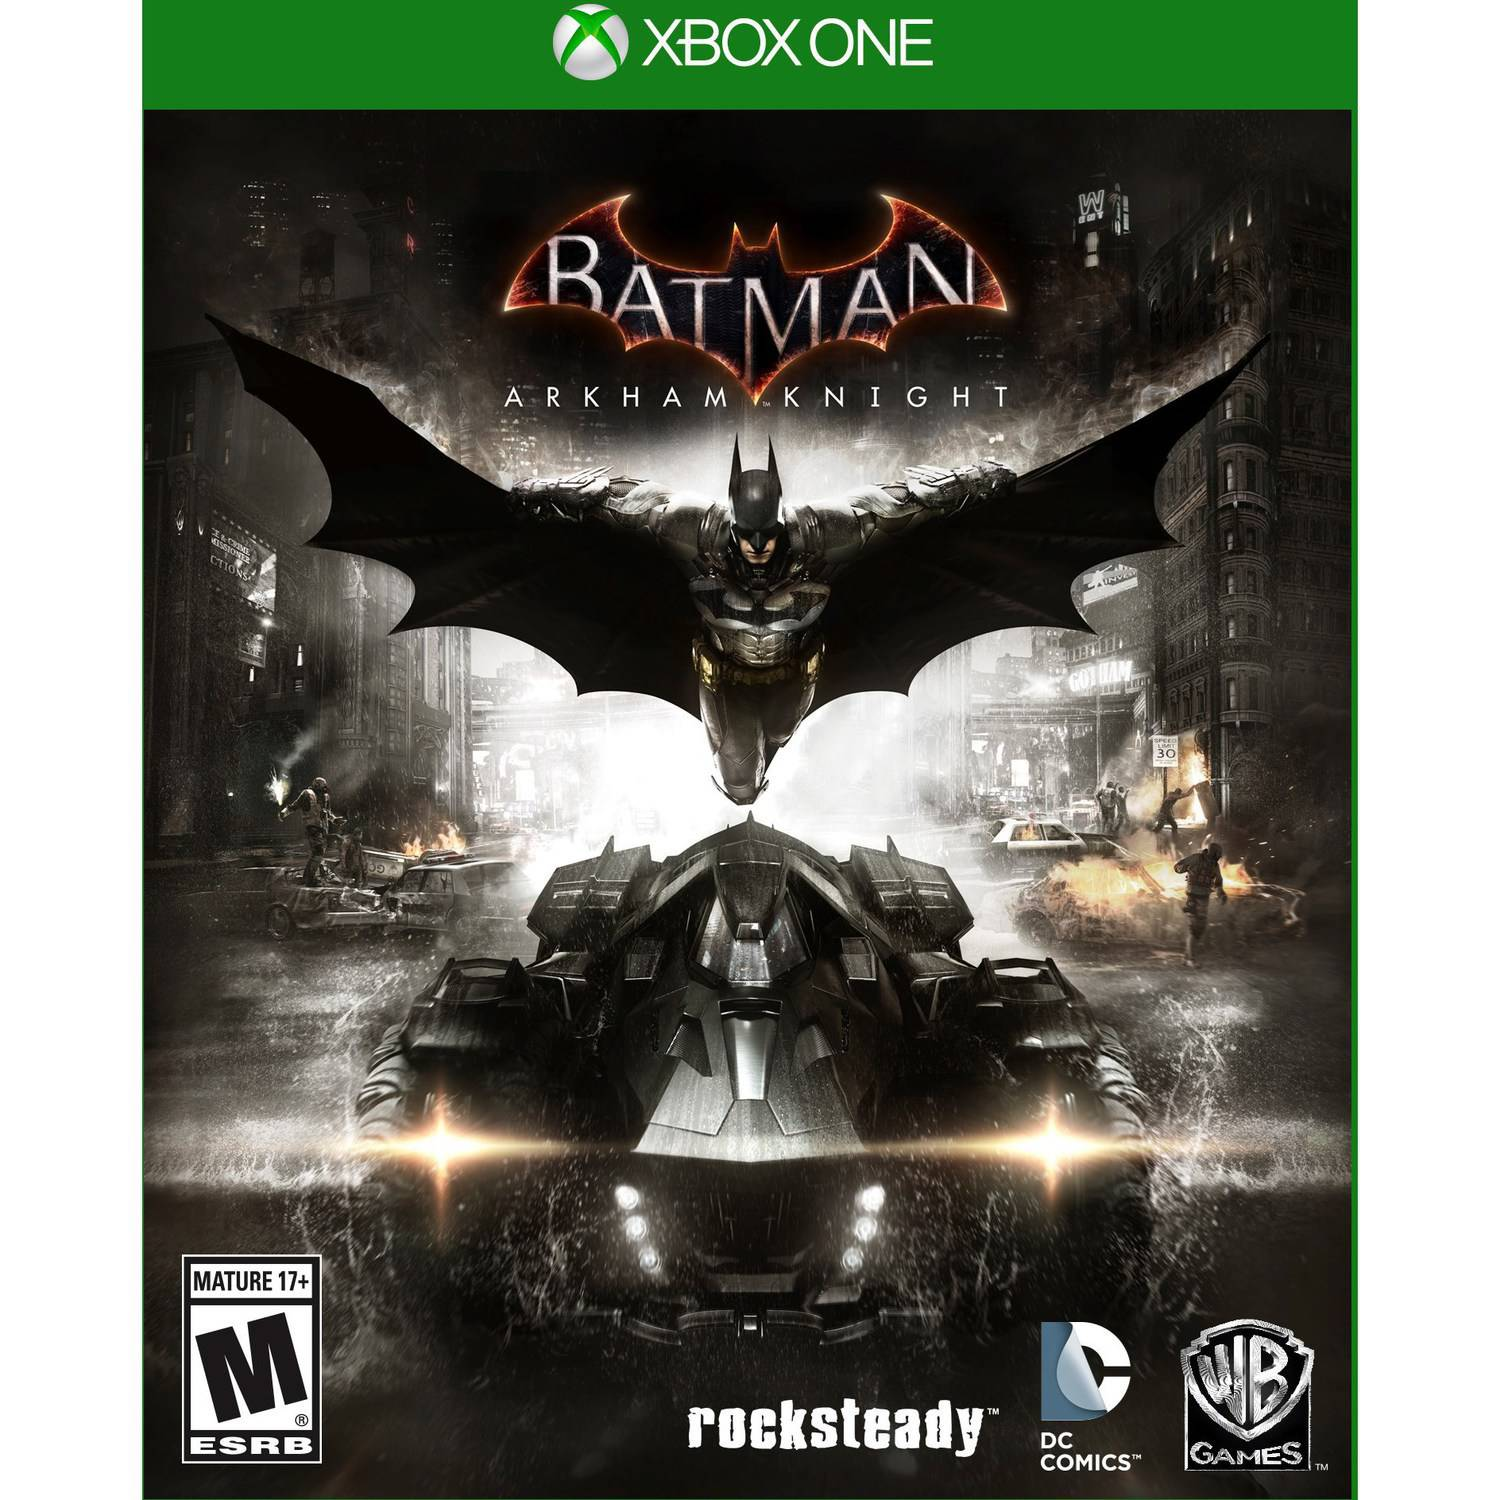 Batman Arkham Knight (Xbox One) - Pre-Owned